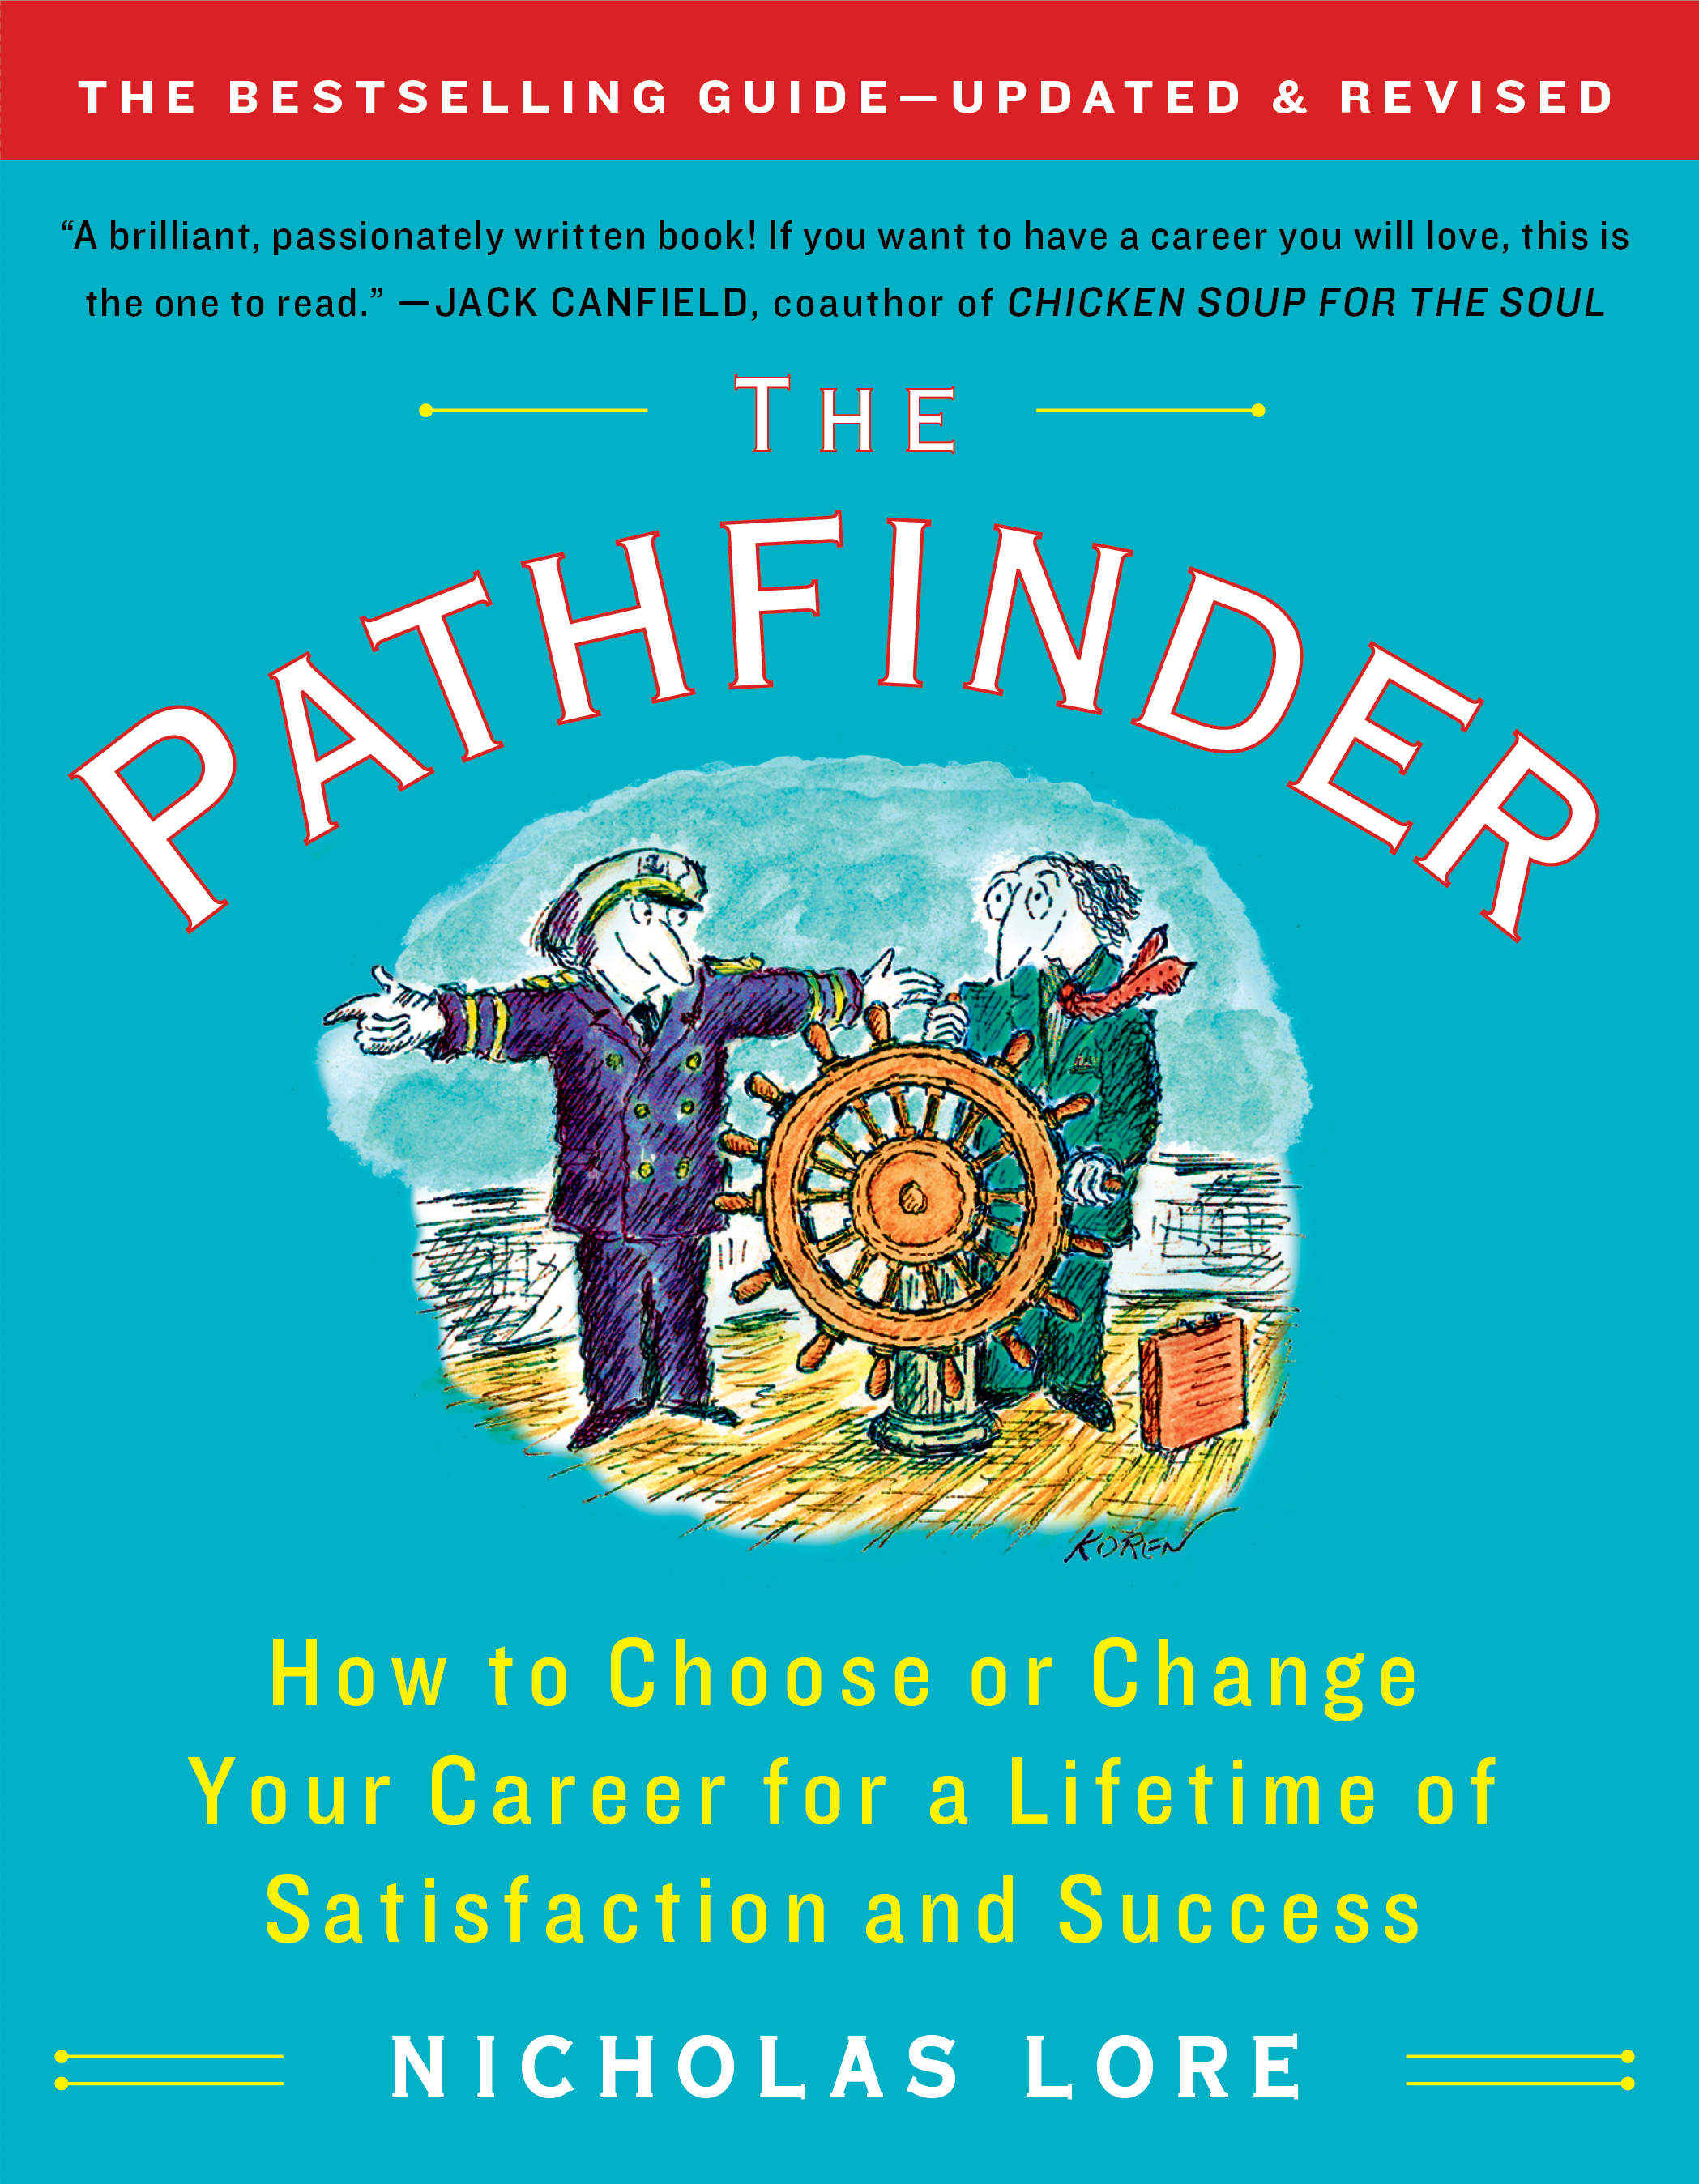 the pathfinder book by nicholas lore official publisher page how to choose or change your career for a lifetime of satisfaction and success